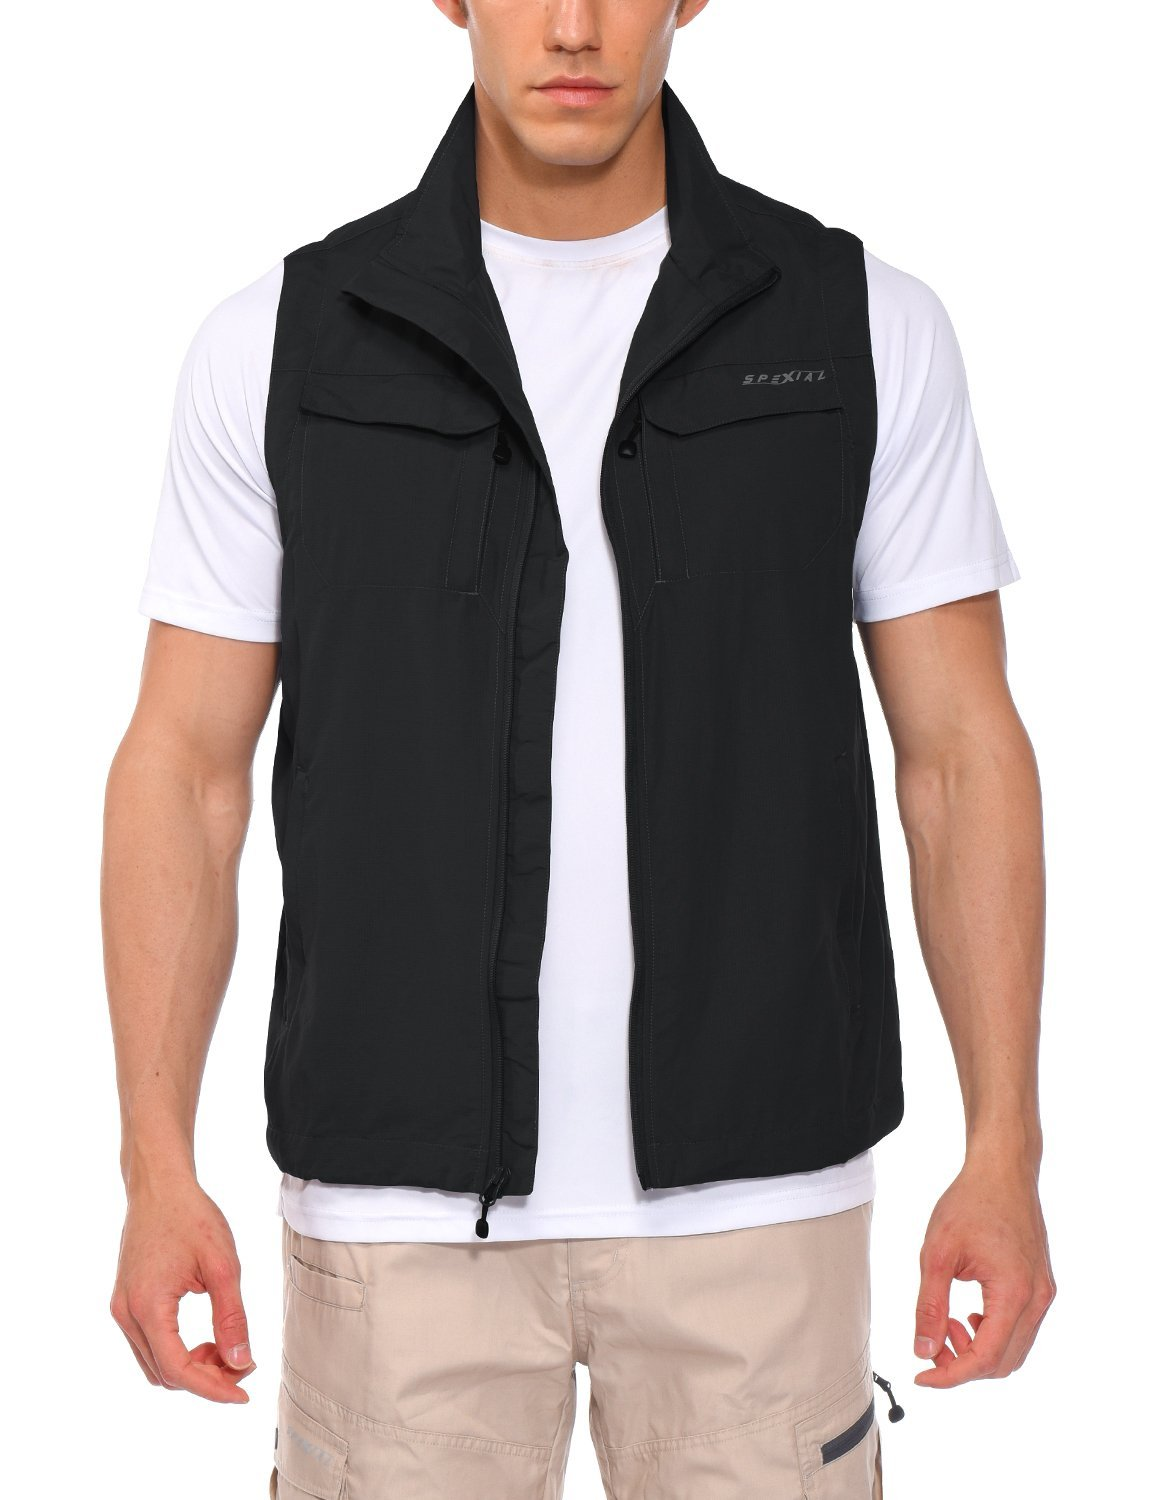 Spexial Men's Outdoor Vest Travel Hunting Nylon Pockets Gilet Black Size S